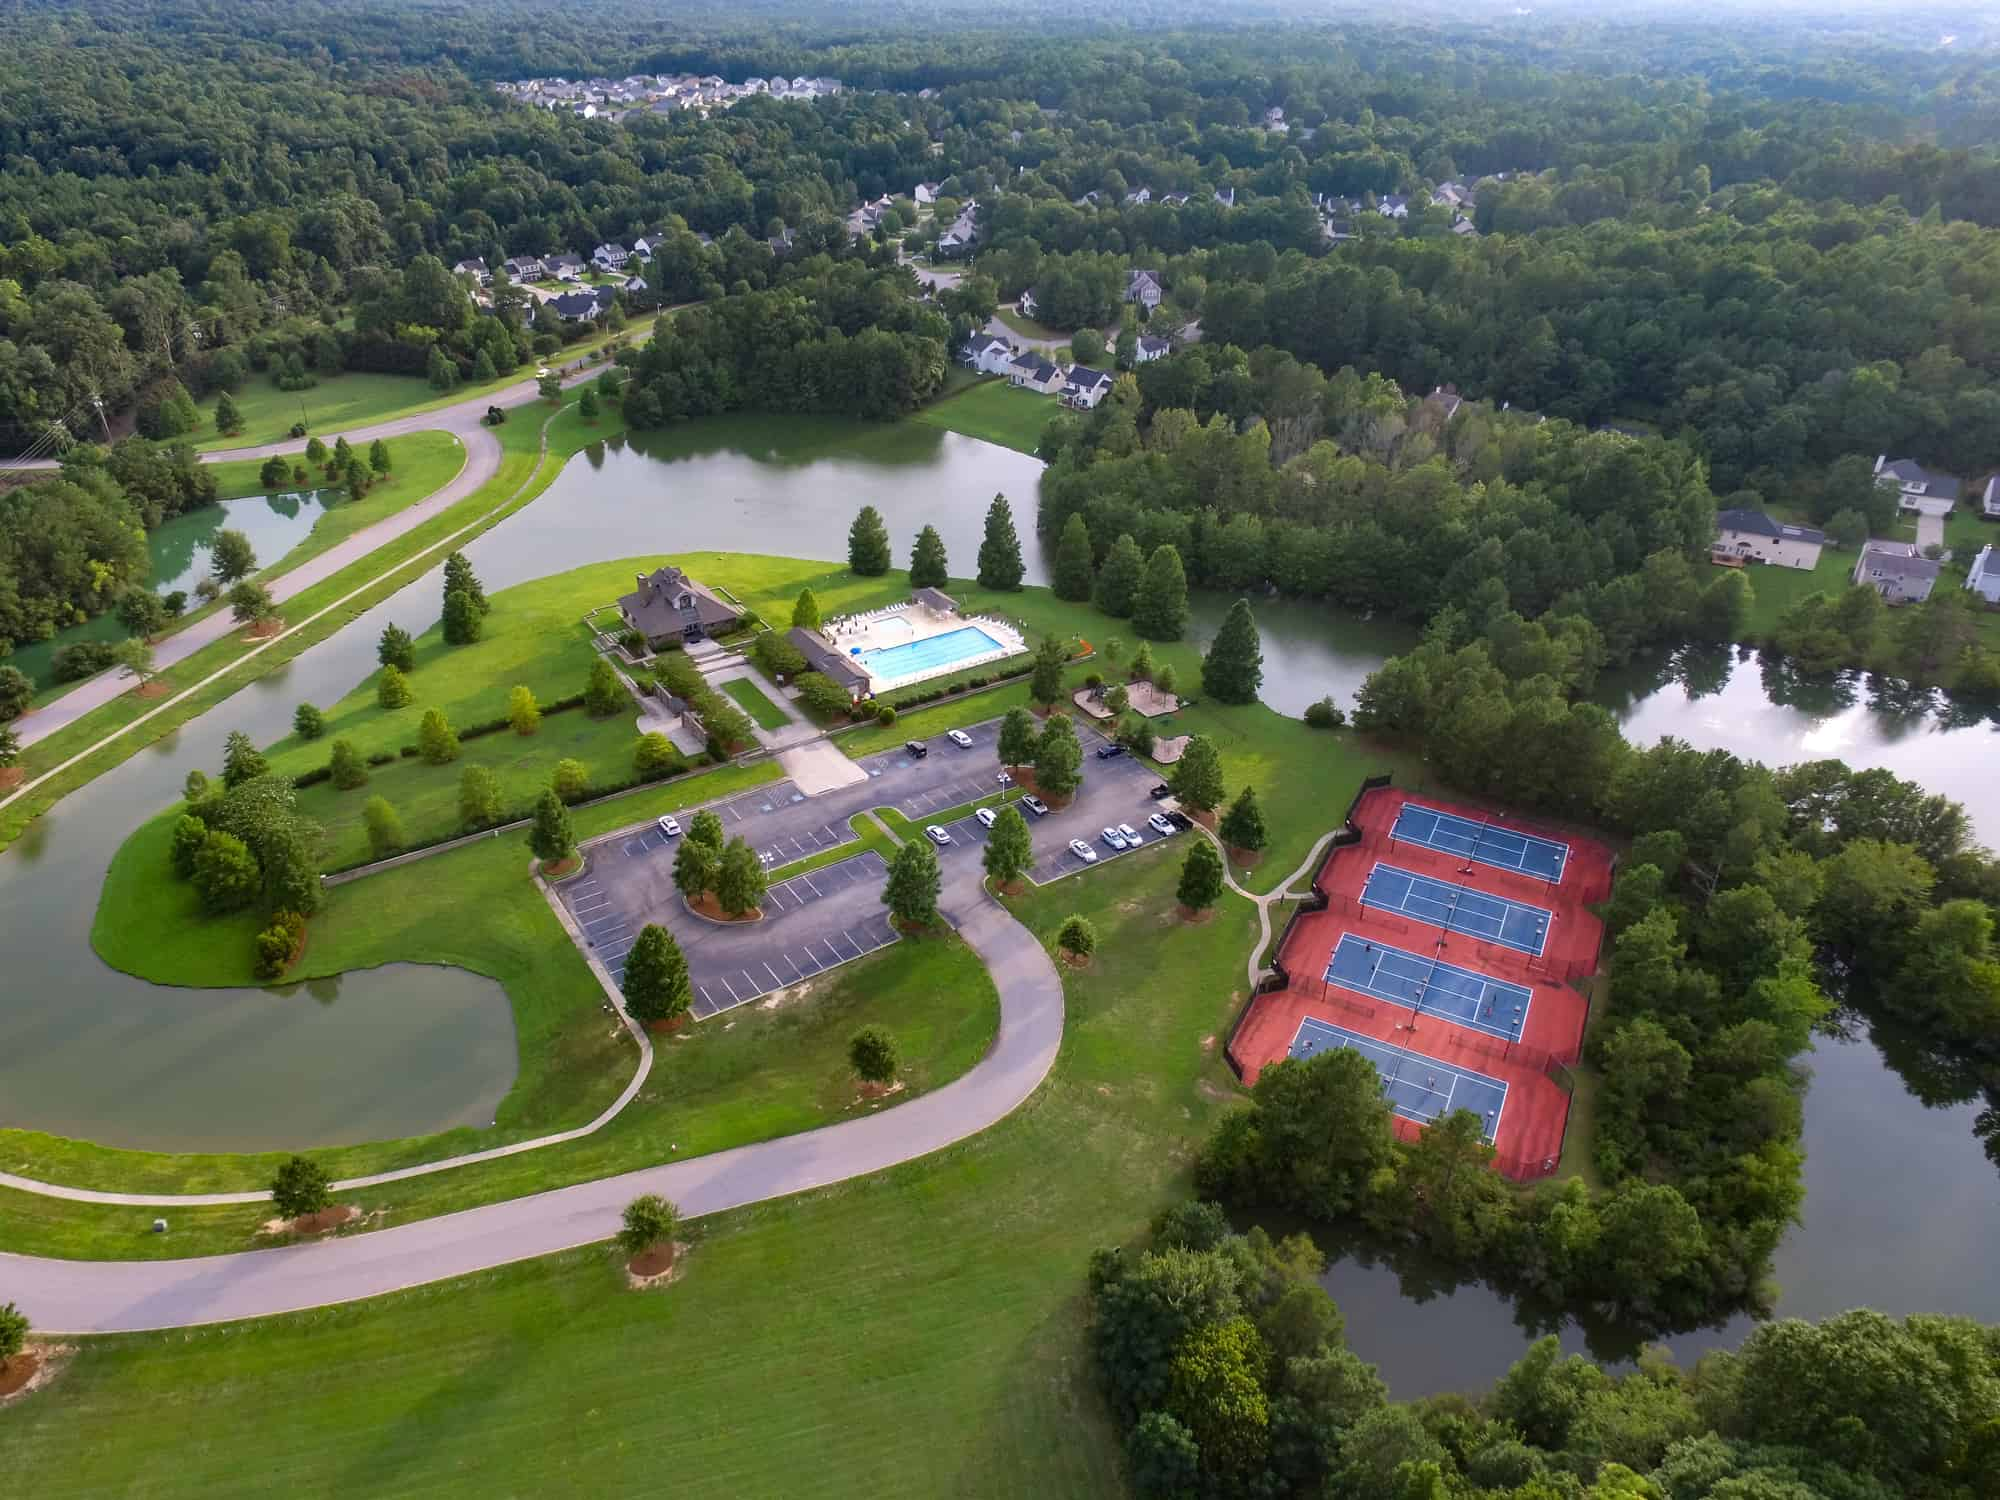 Overhead View Of CHPHOA Clubhouse and tennis courts